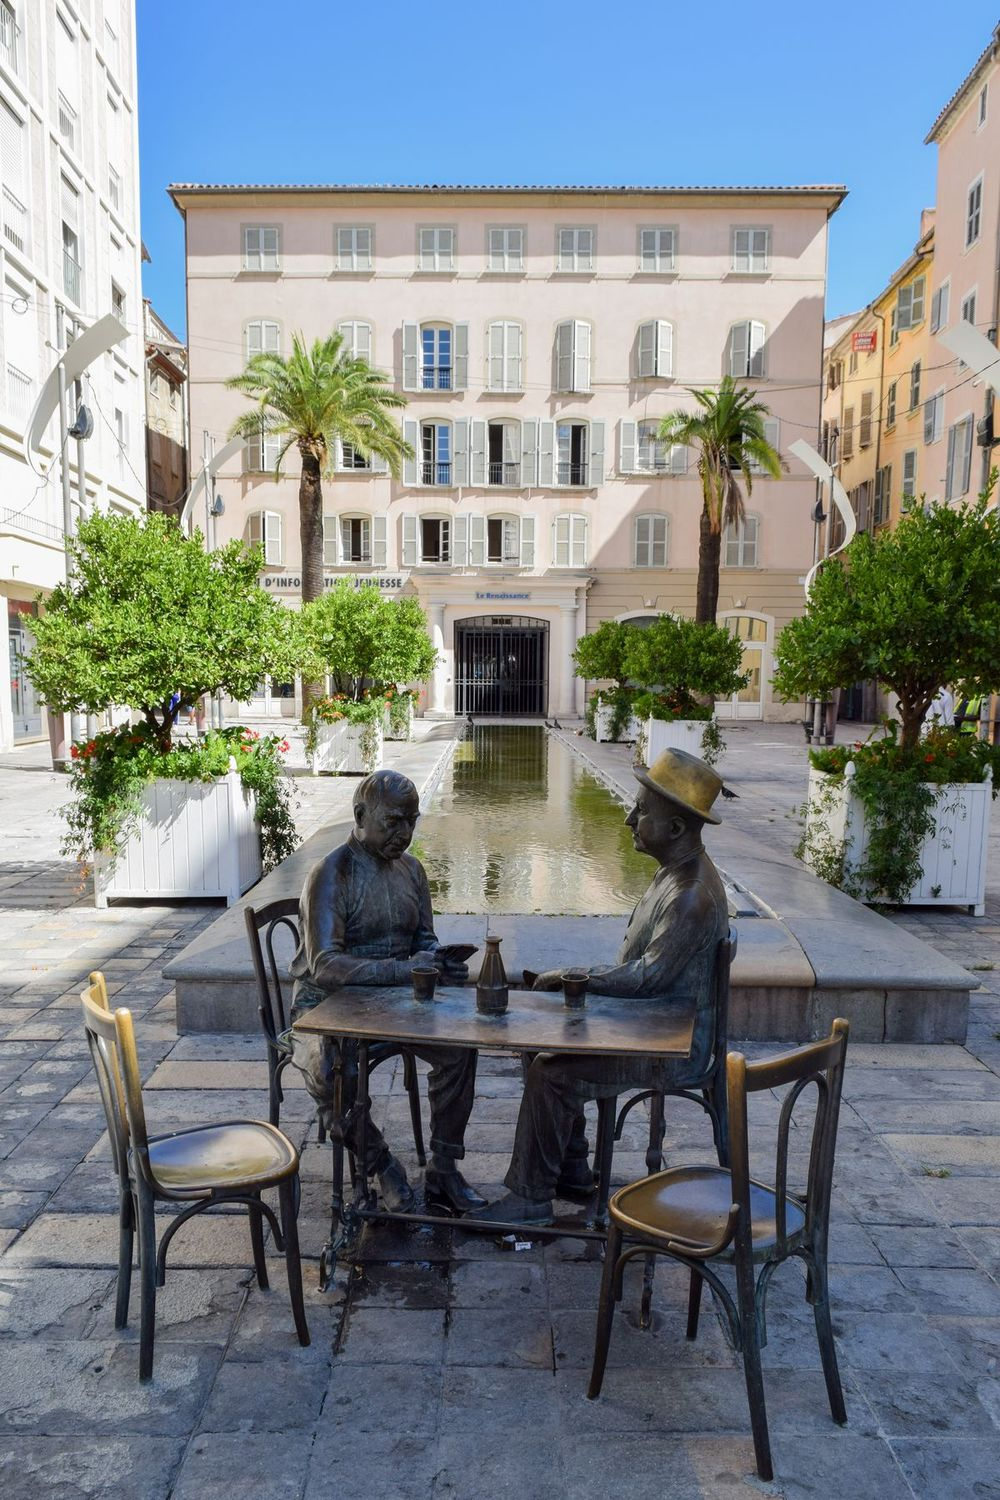 Statue of Men Playing Cards, Place Raimu Square, Toulon, France